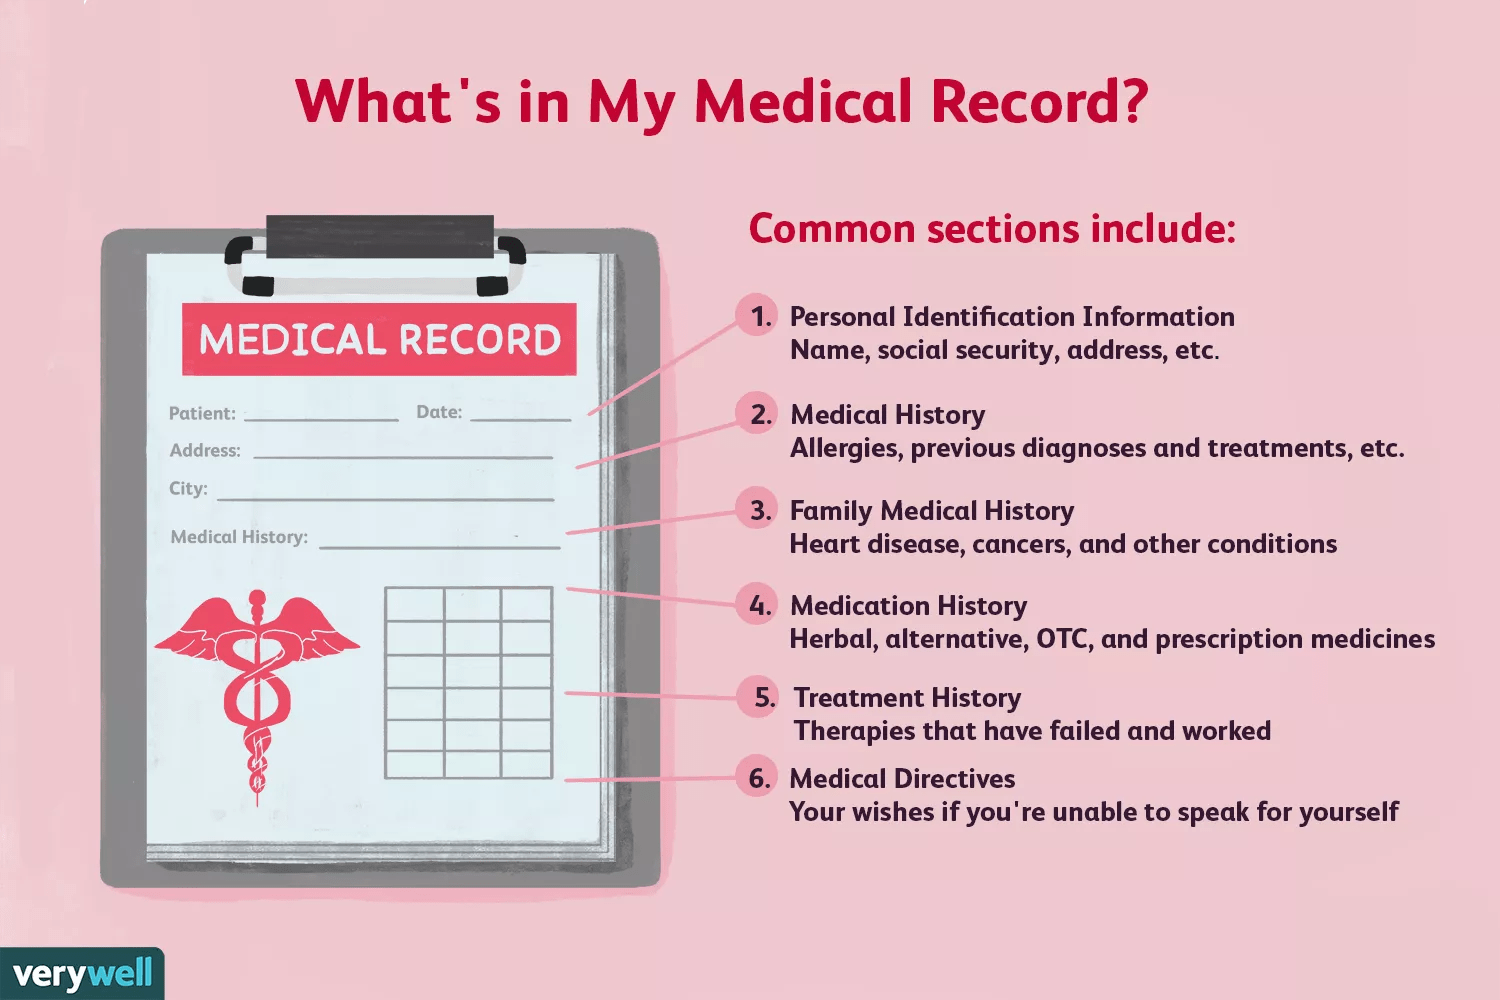 What's in my medical record?